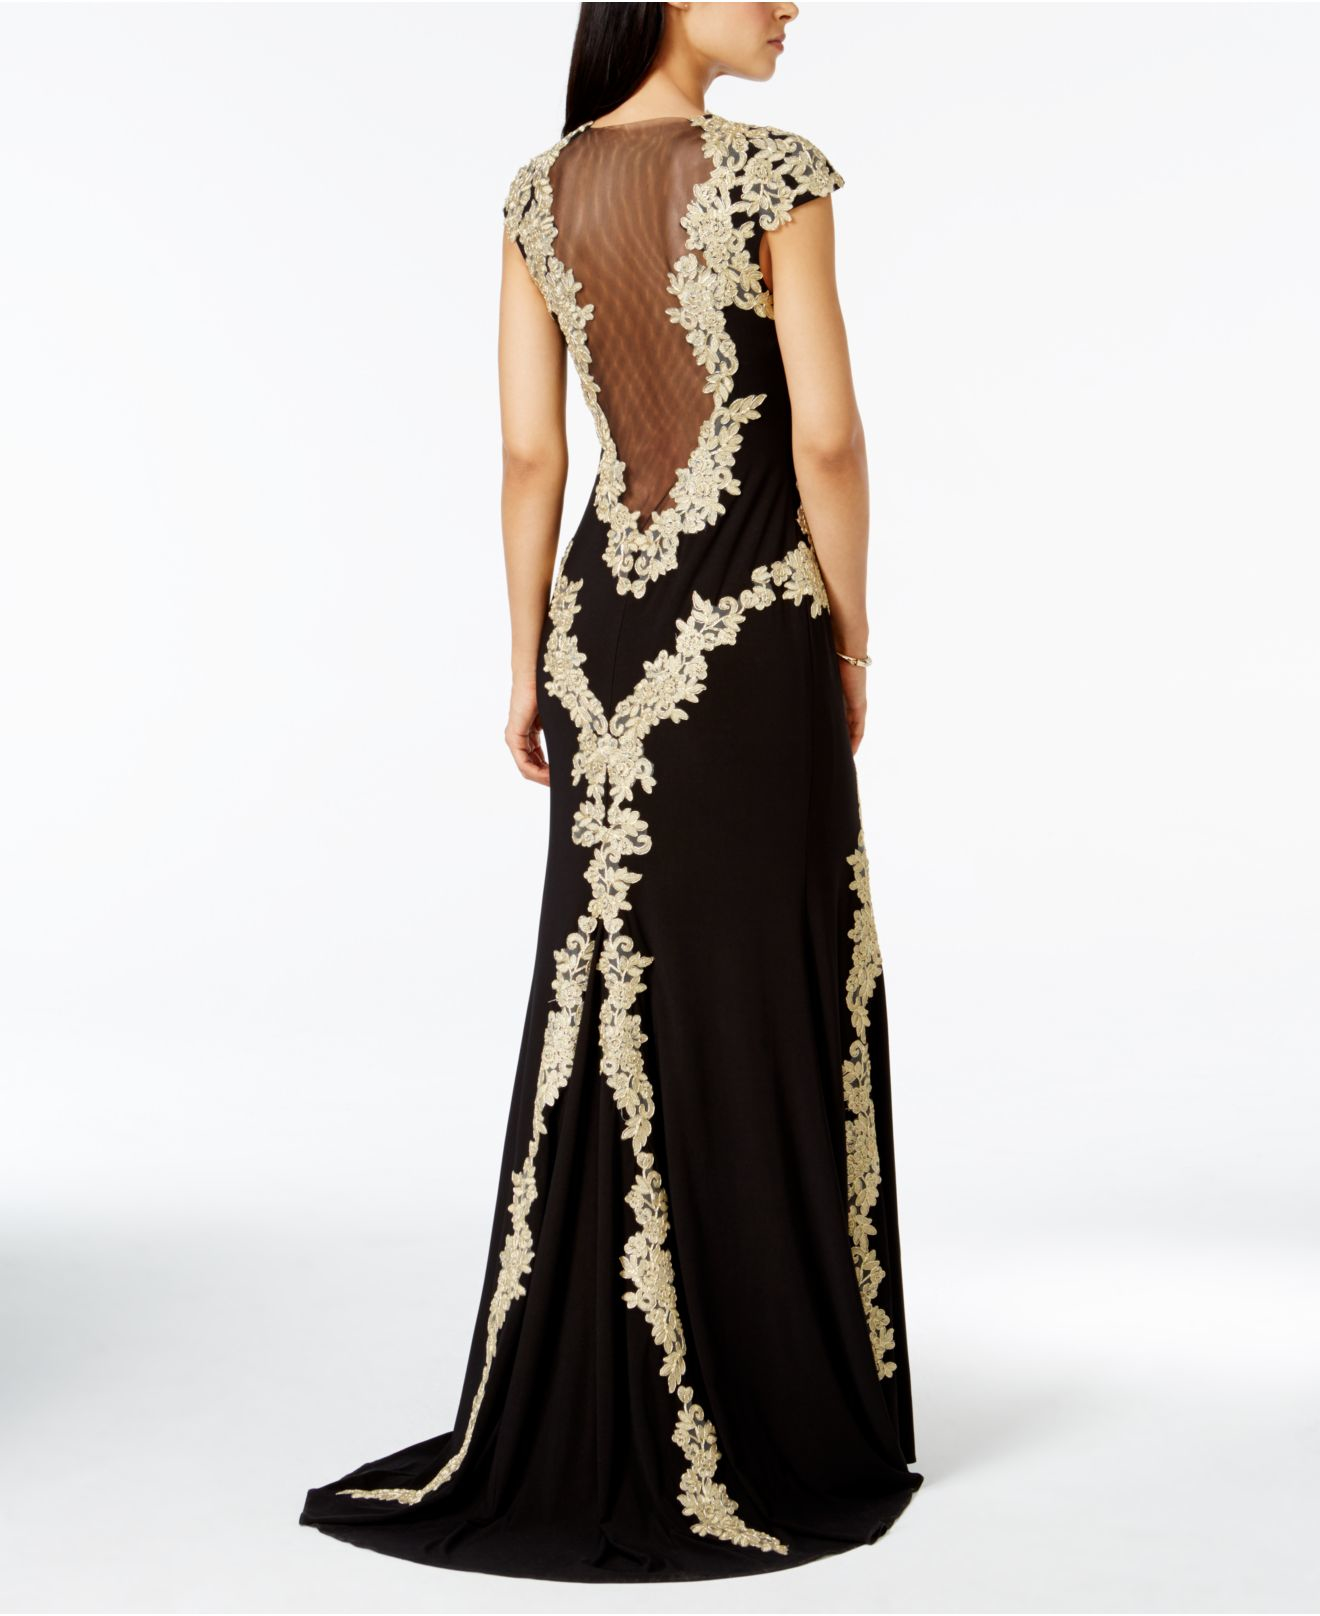 Lyst - Betsy & Adam Petite Lace Keyhole Gown in Metallic